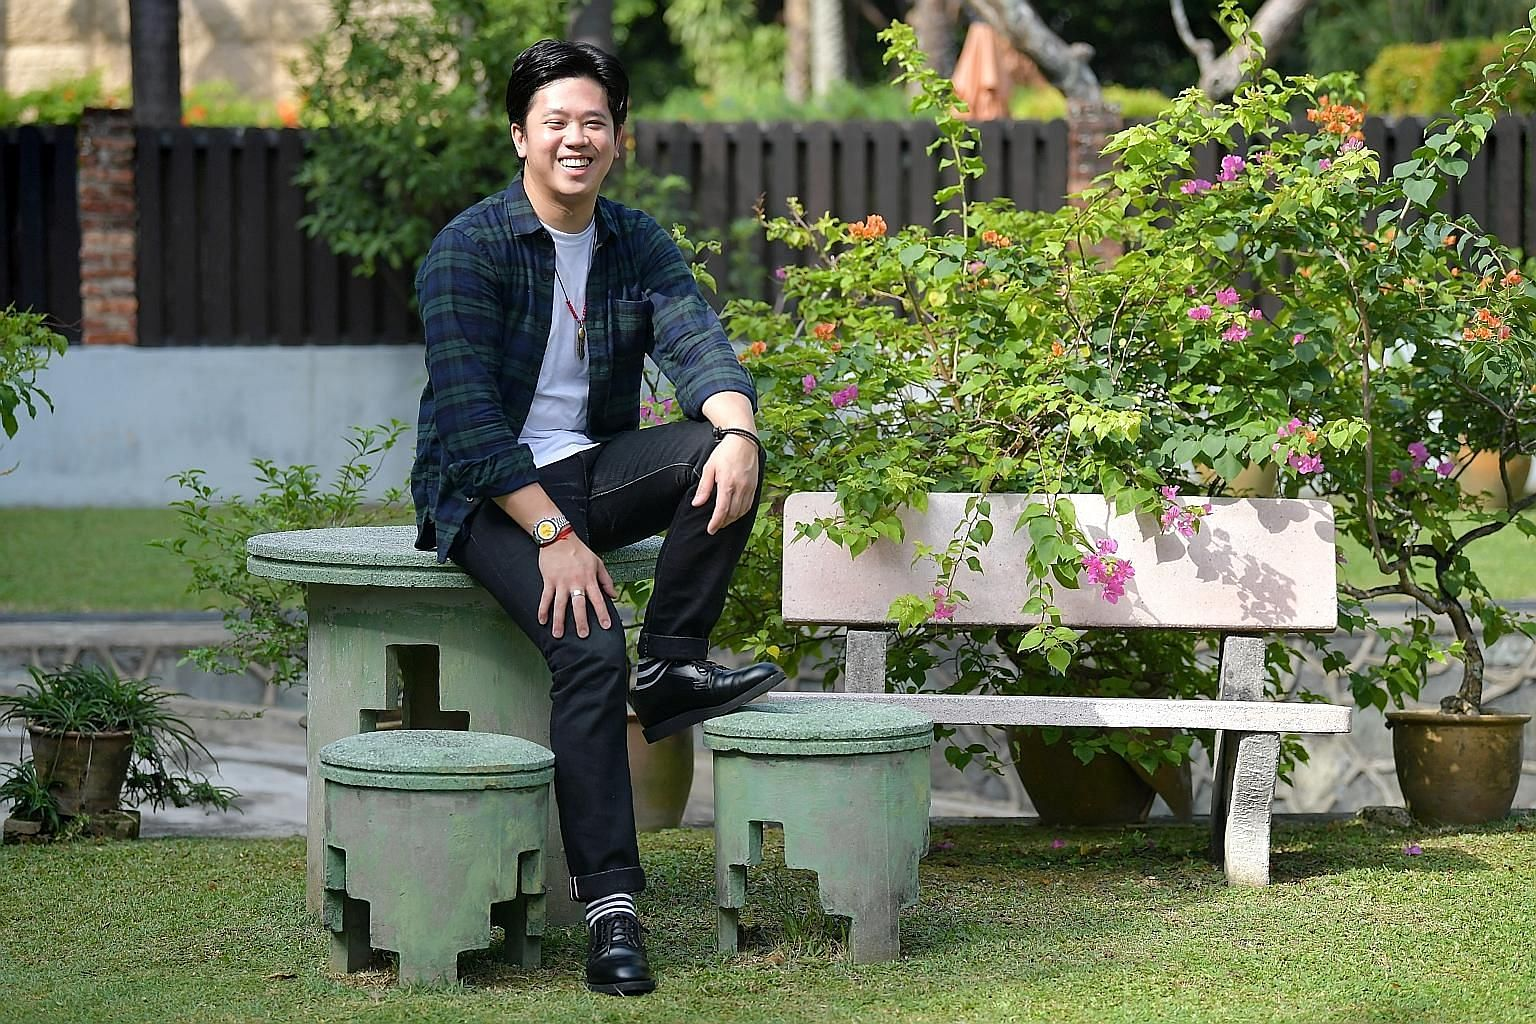 Mr Khoo Kian Chew, 29, director of partnerships and marketing at Epik, looks towards the success of the firm as his retirement investment. He is a believer that even when he reaches retirement, he will still keep himself active in some form of busine